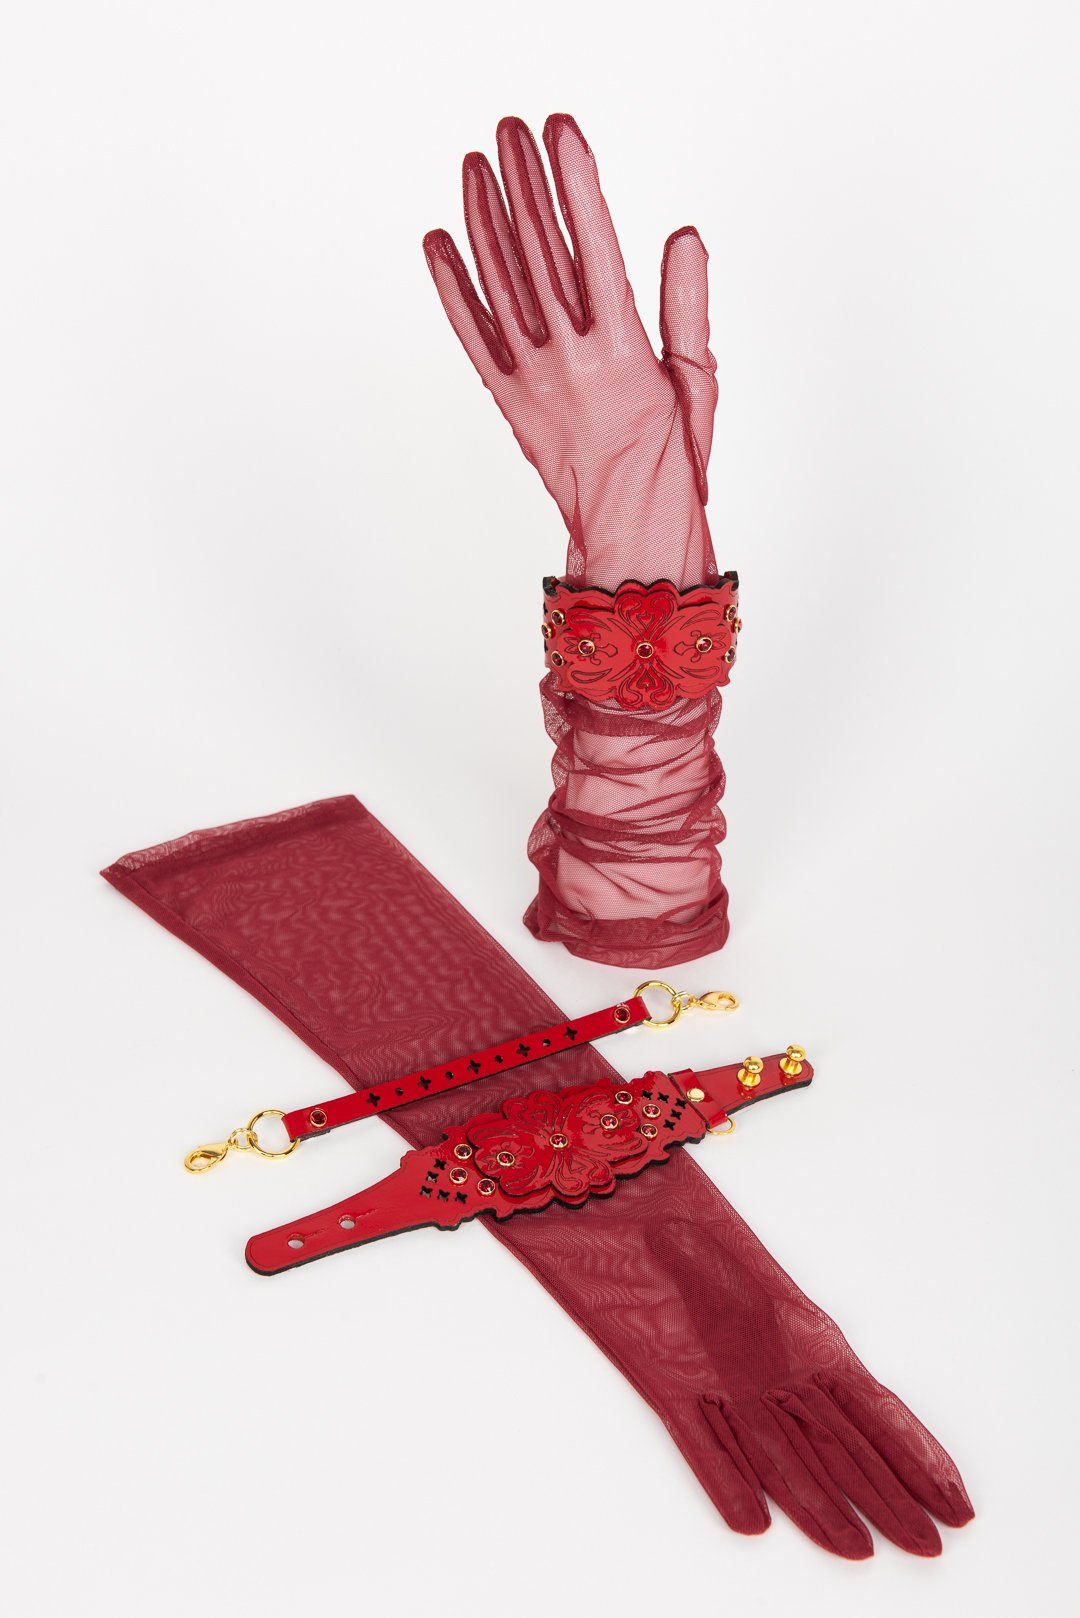 Red Tulle Gloves with Patent Leather Restraints buy online at Fraulein Kink